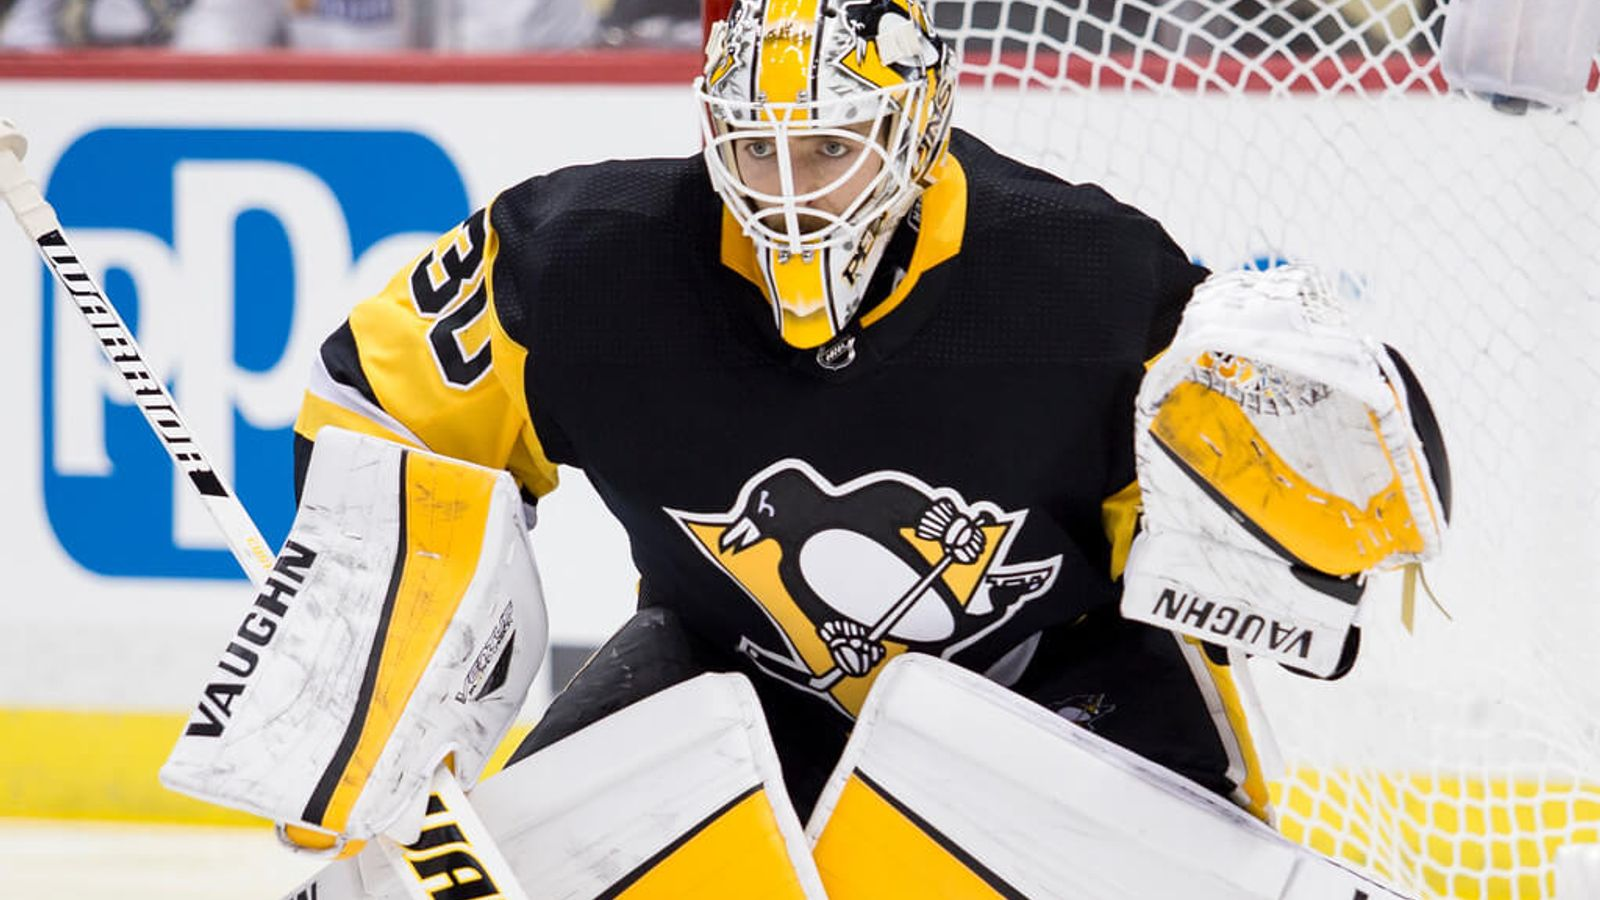 Murray Now Working With Personal Goalie Coach